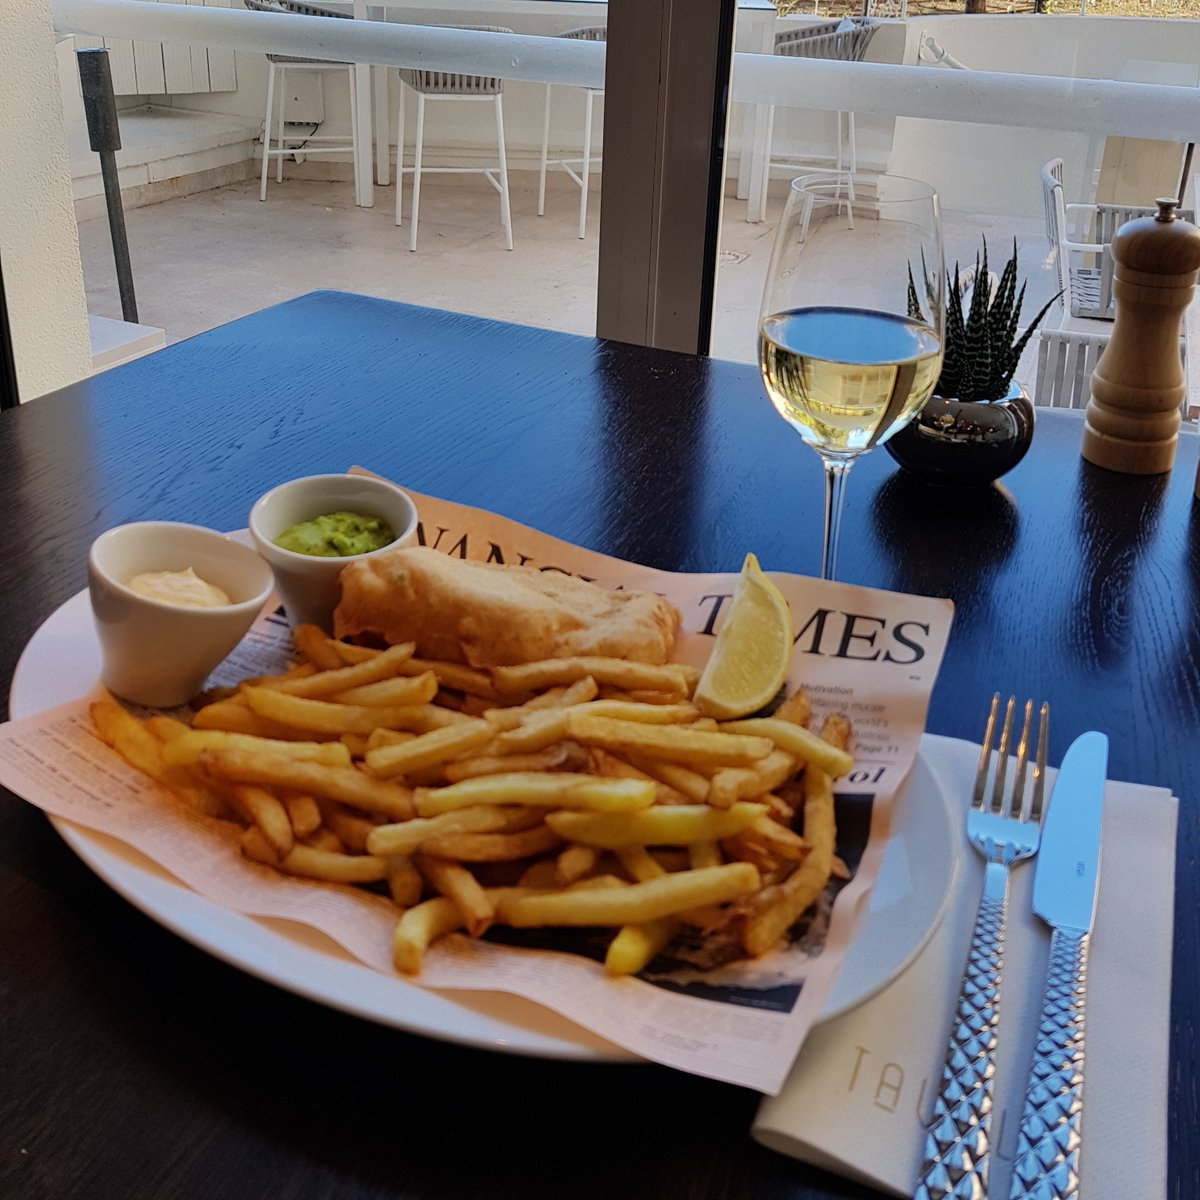 Our restaurant @TavoloMC proposes Fish and Chips, available every Friday in addition to our 'ardoise menu'. Tavolo is open from 12pm to 2.30pm, Mondays to Fridays.